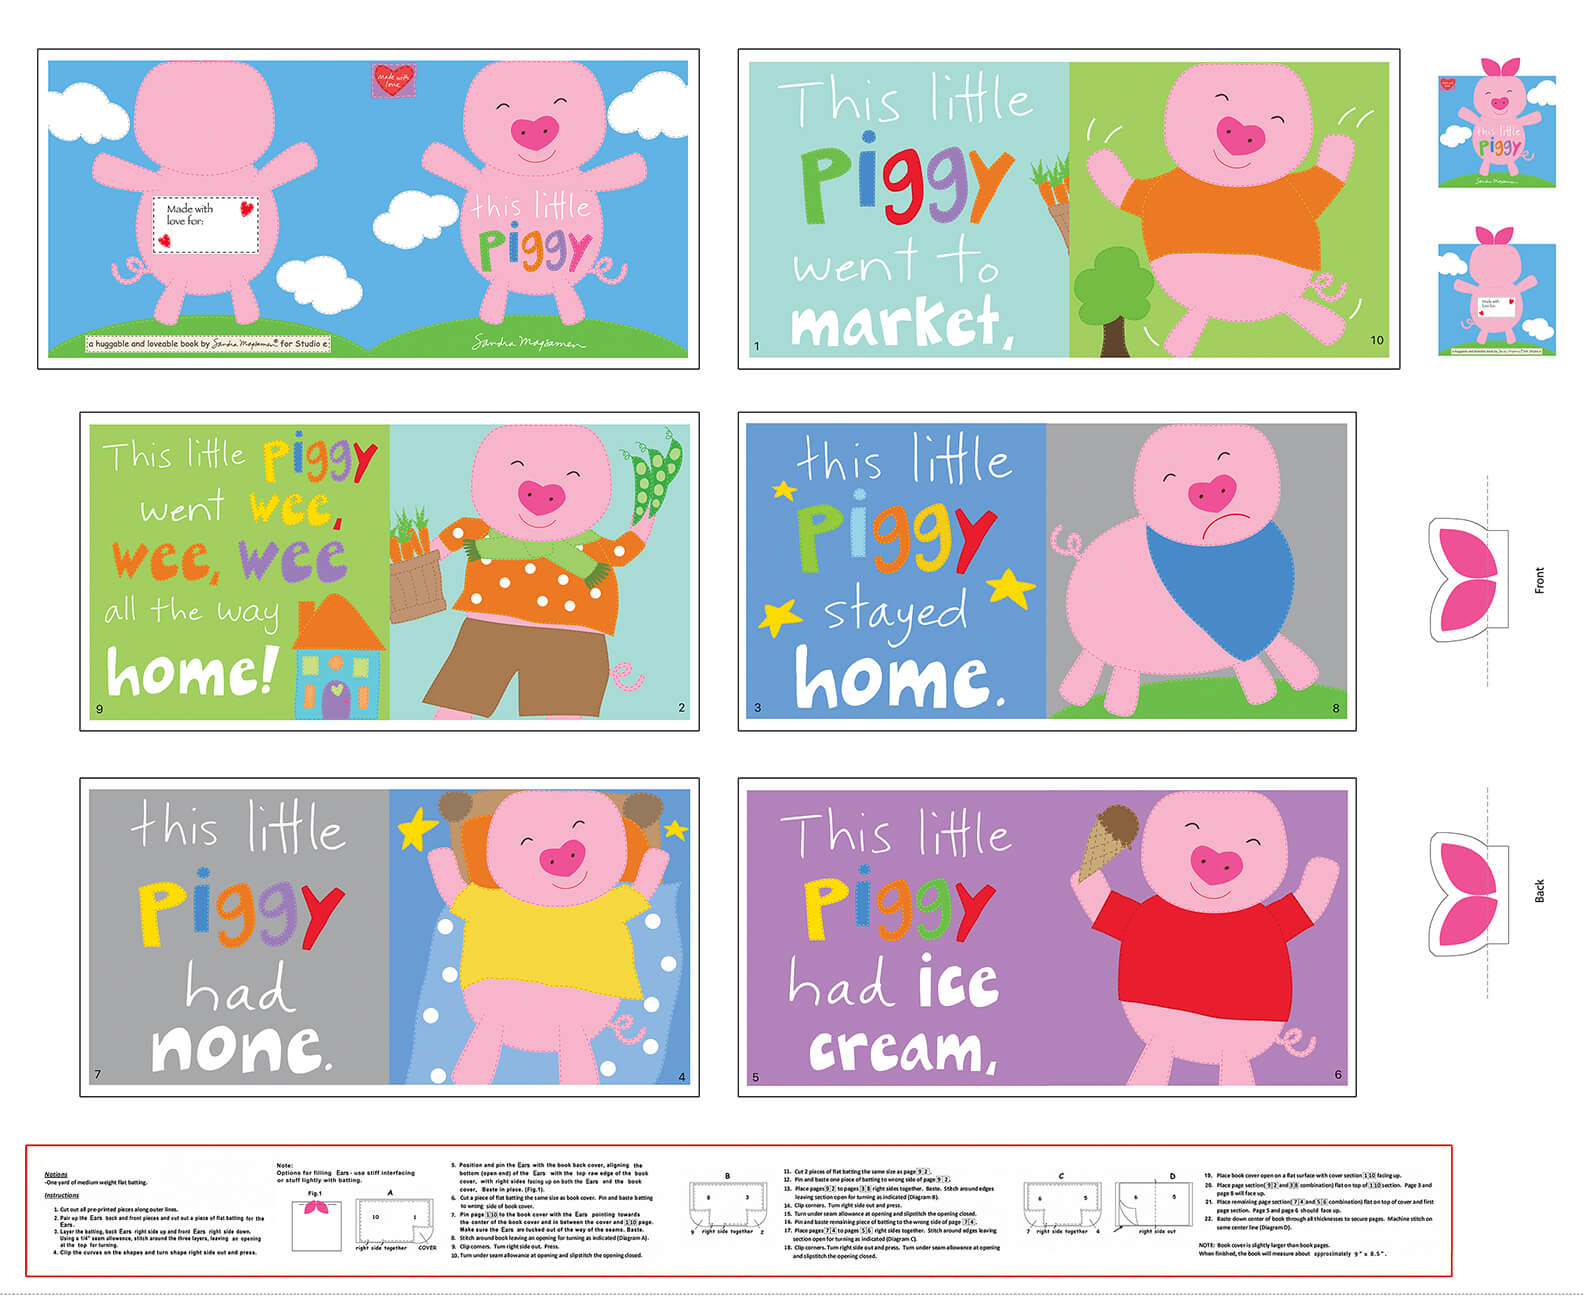 Huggable and Loveable X - This Little Piggy